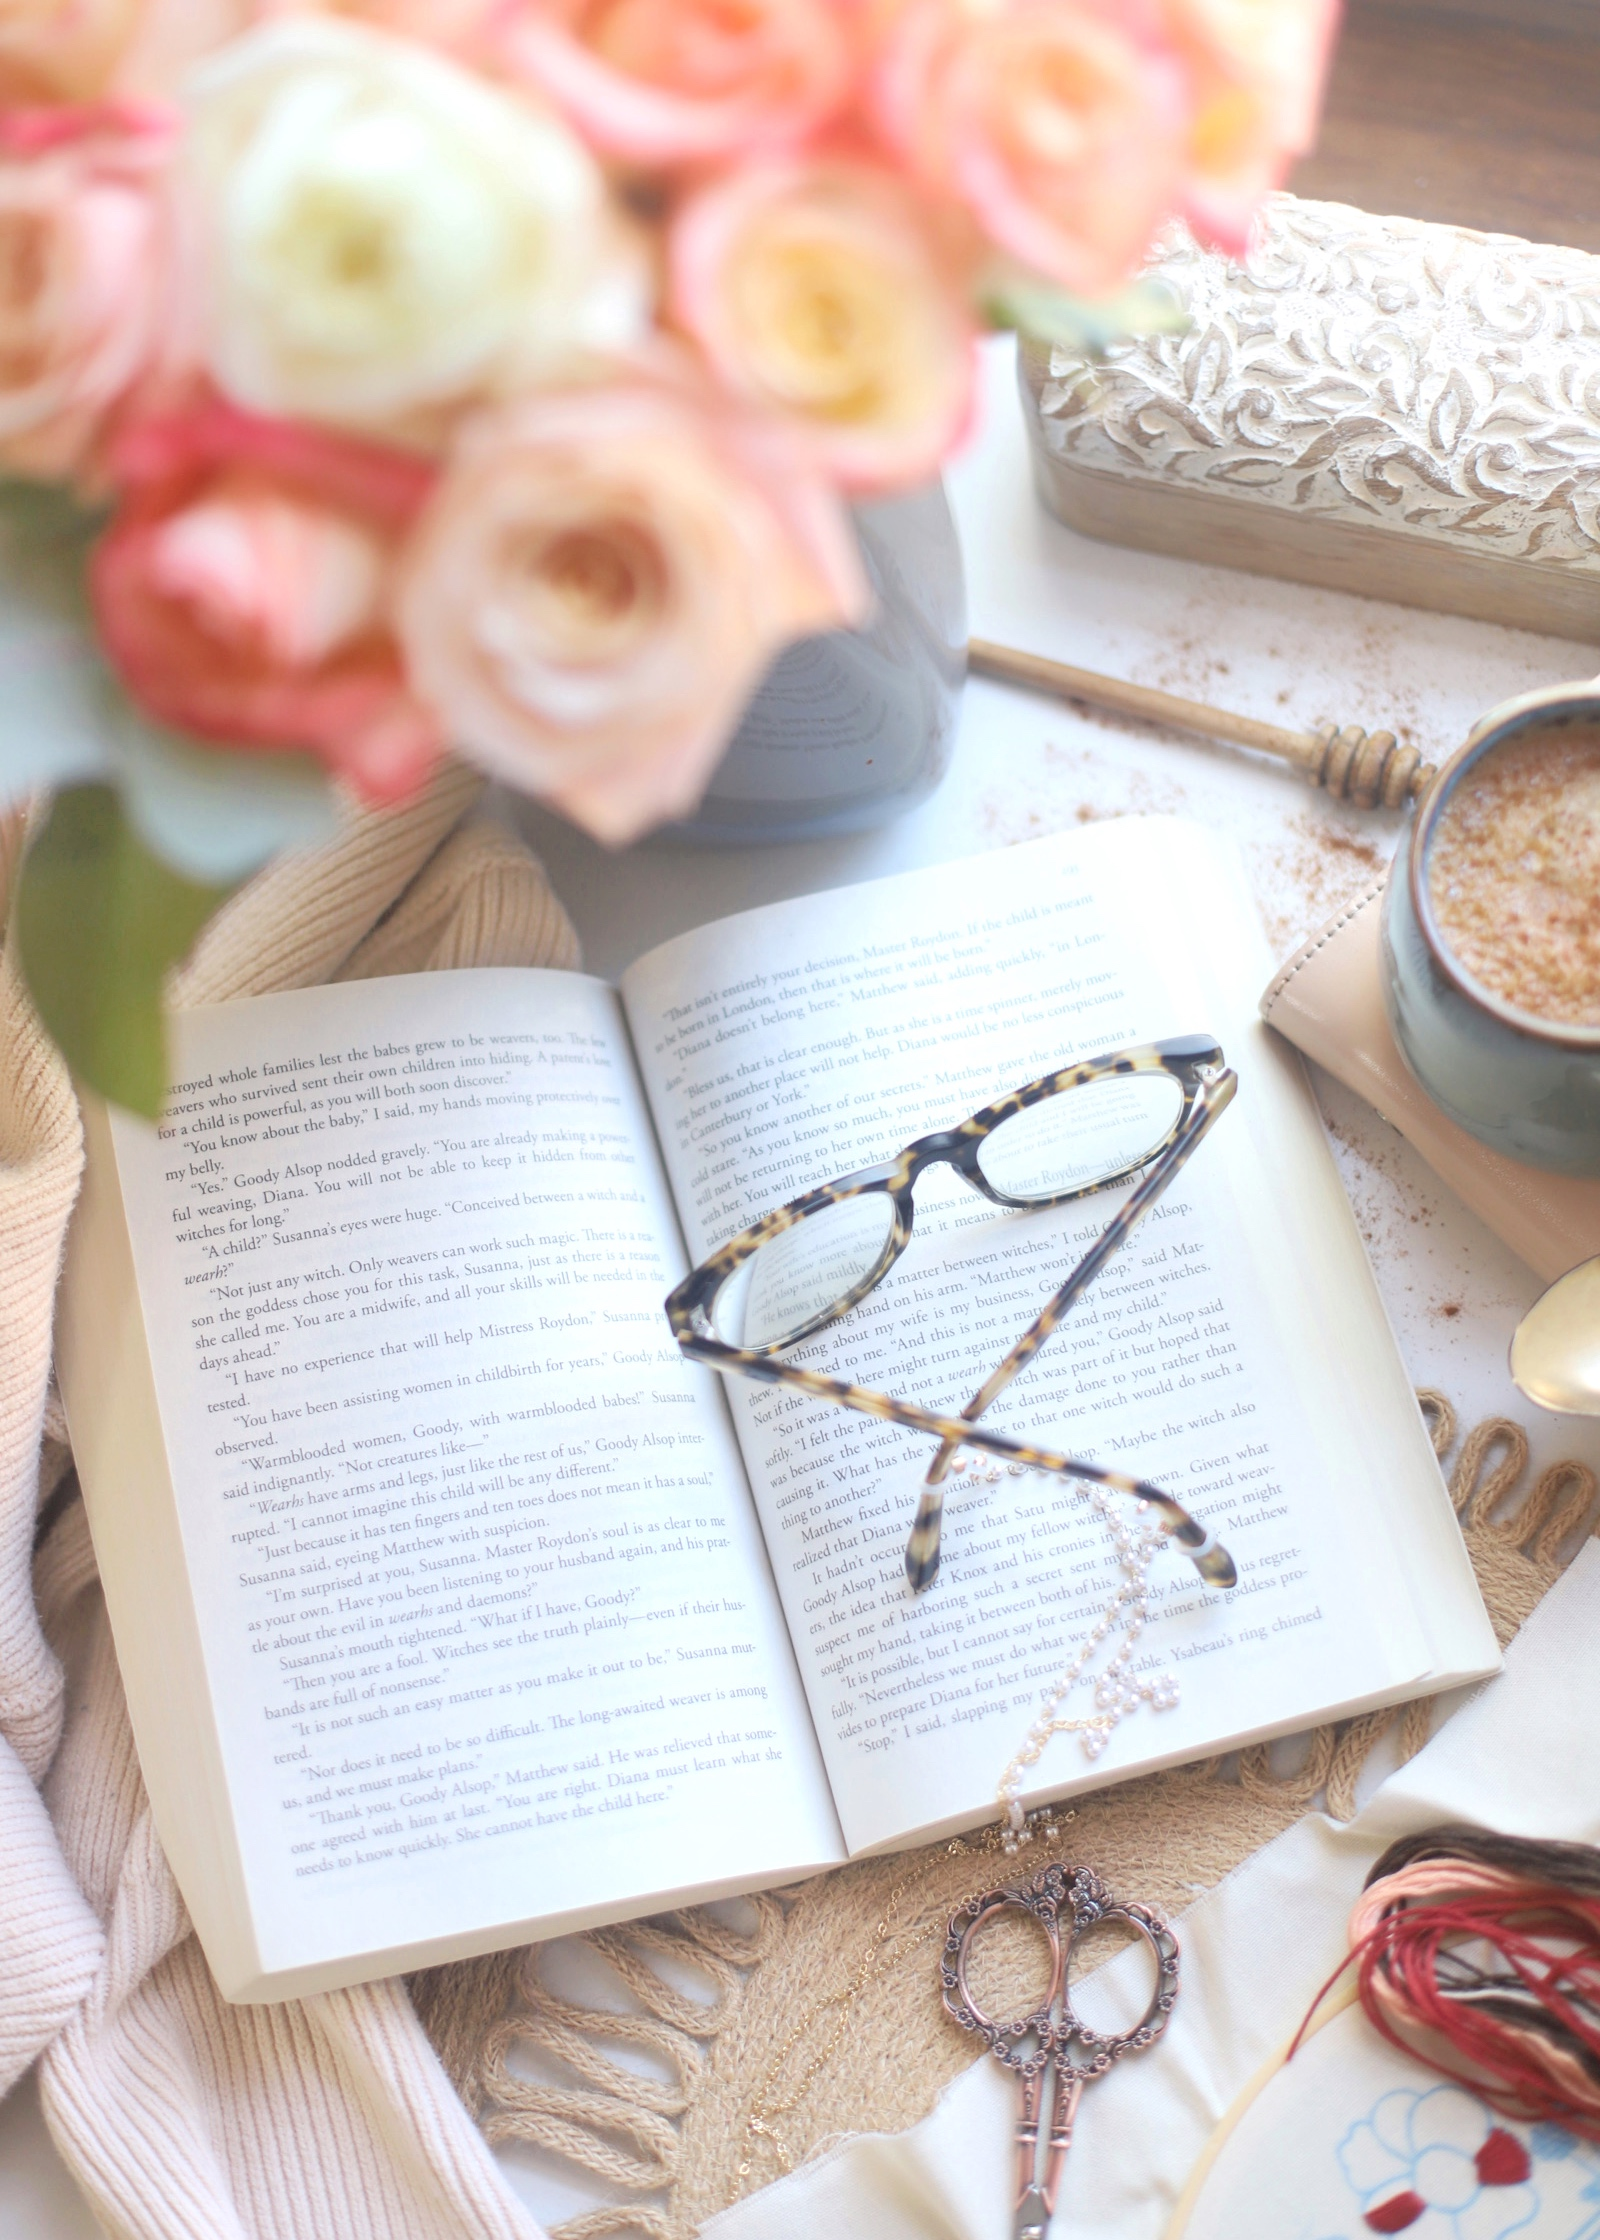 Vacation Mode - Flowers, Good Books, Embroidery, and Coffee